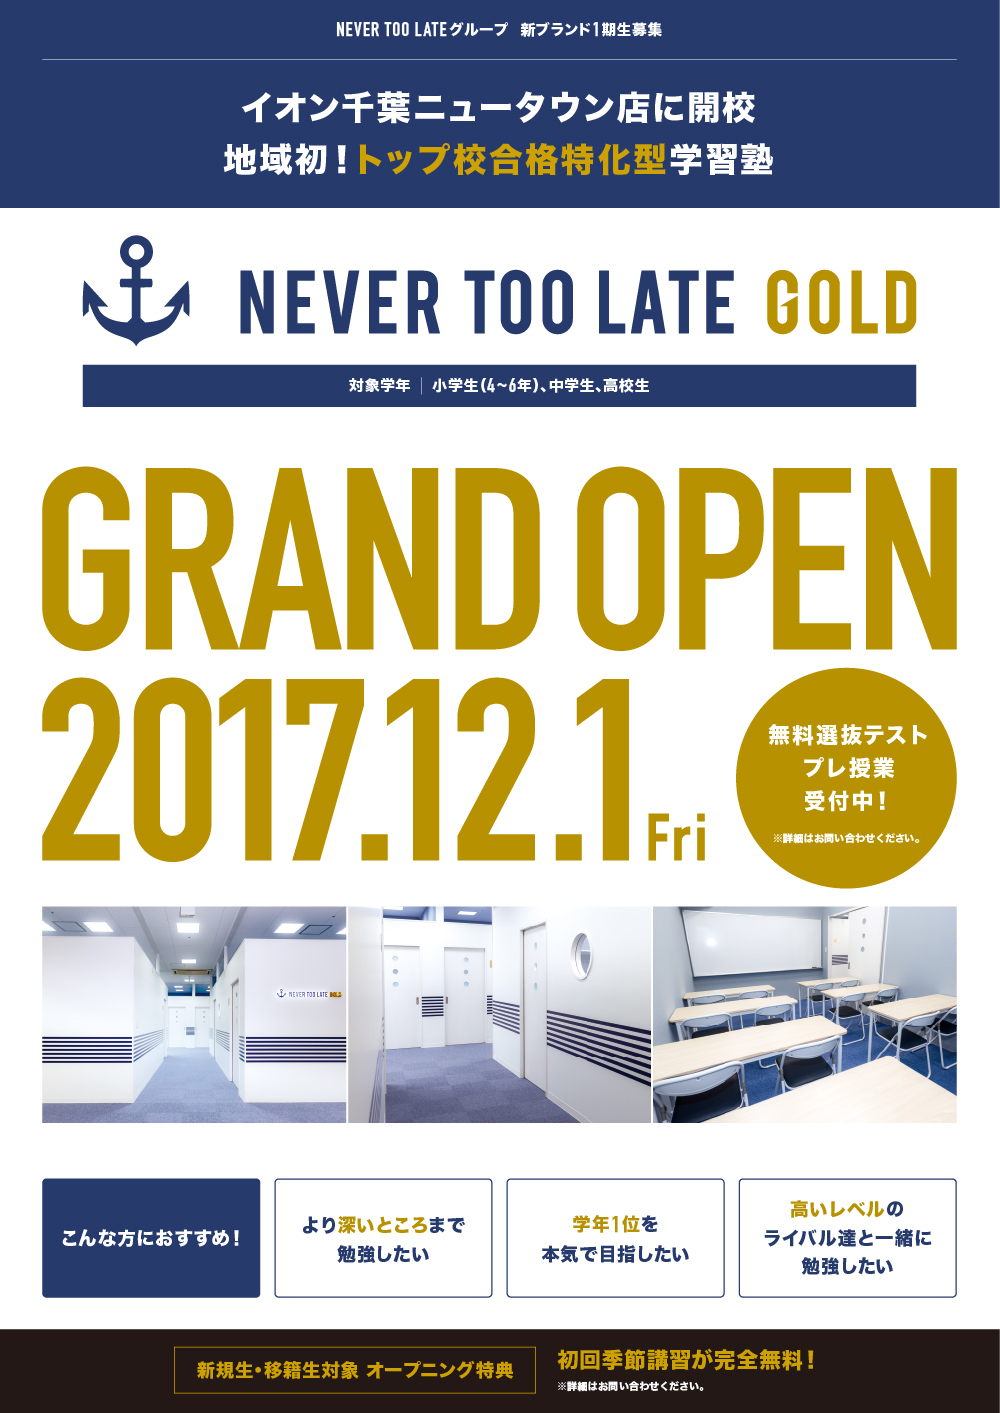 NEVER TOO LATE GOLD GRAND OPEN 2017.12.1 Fri